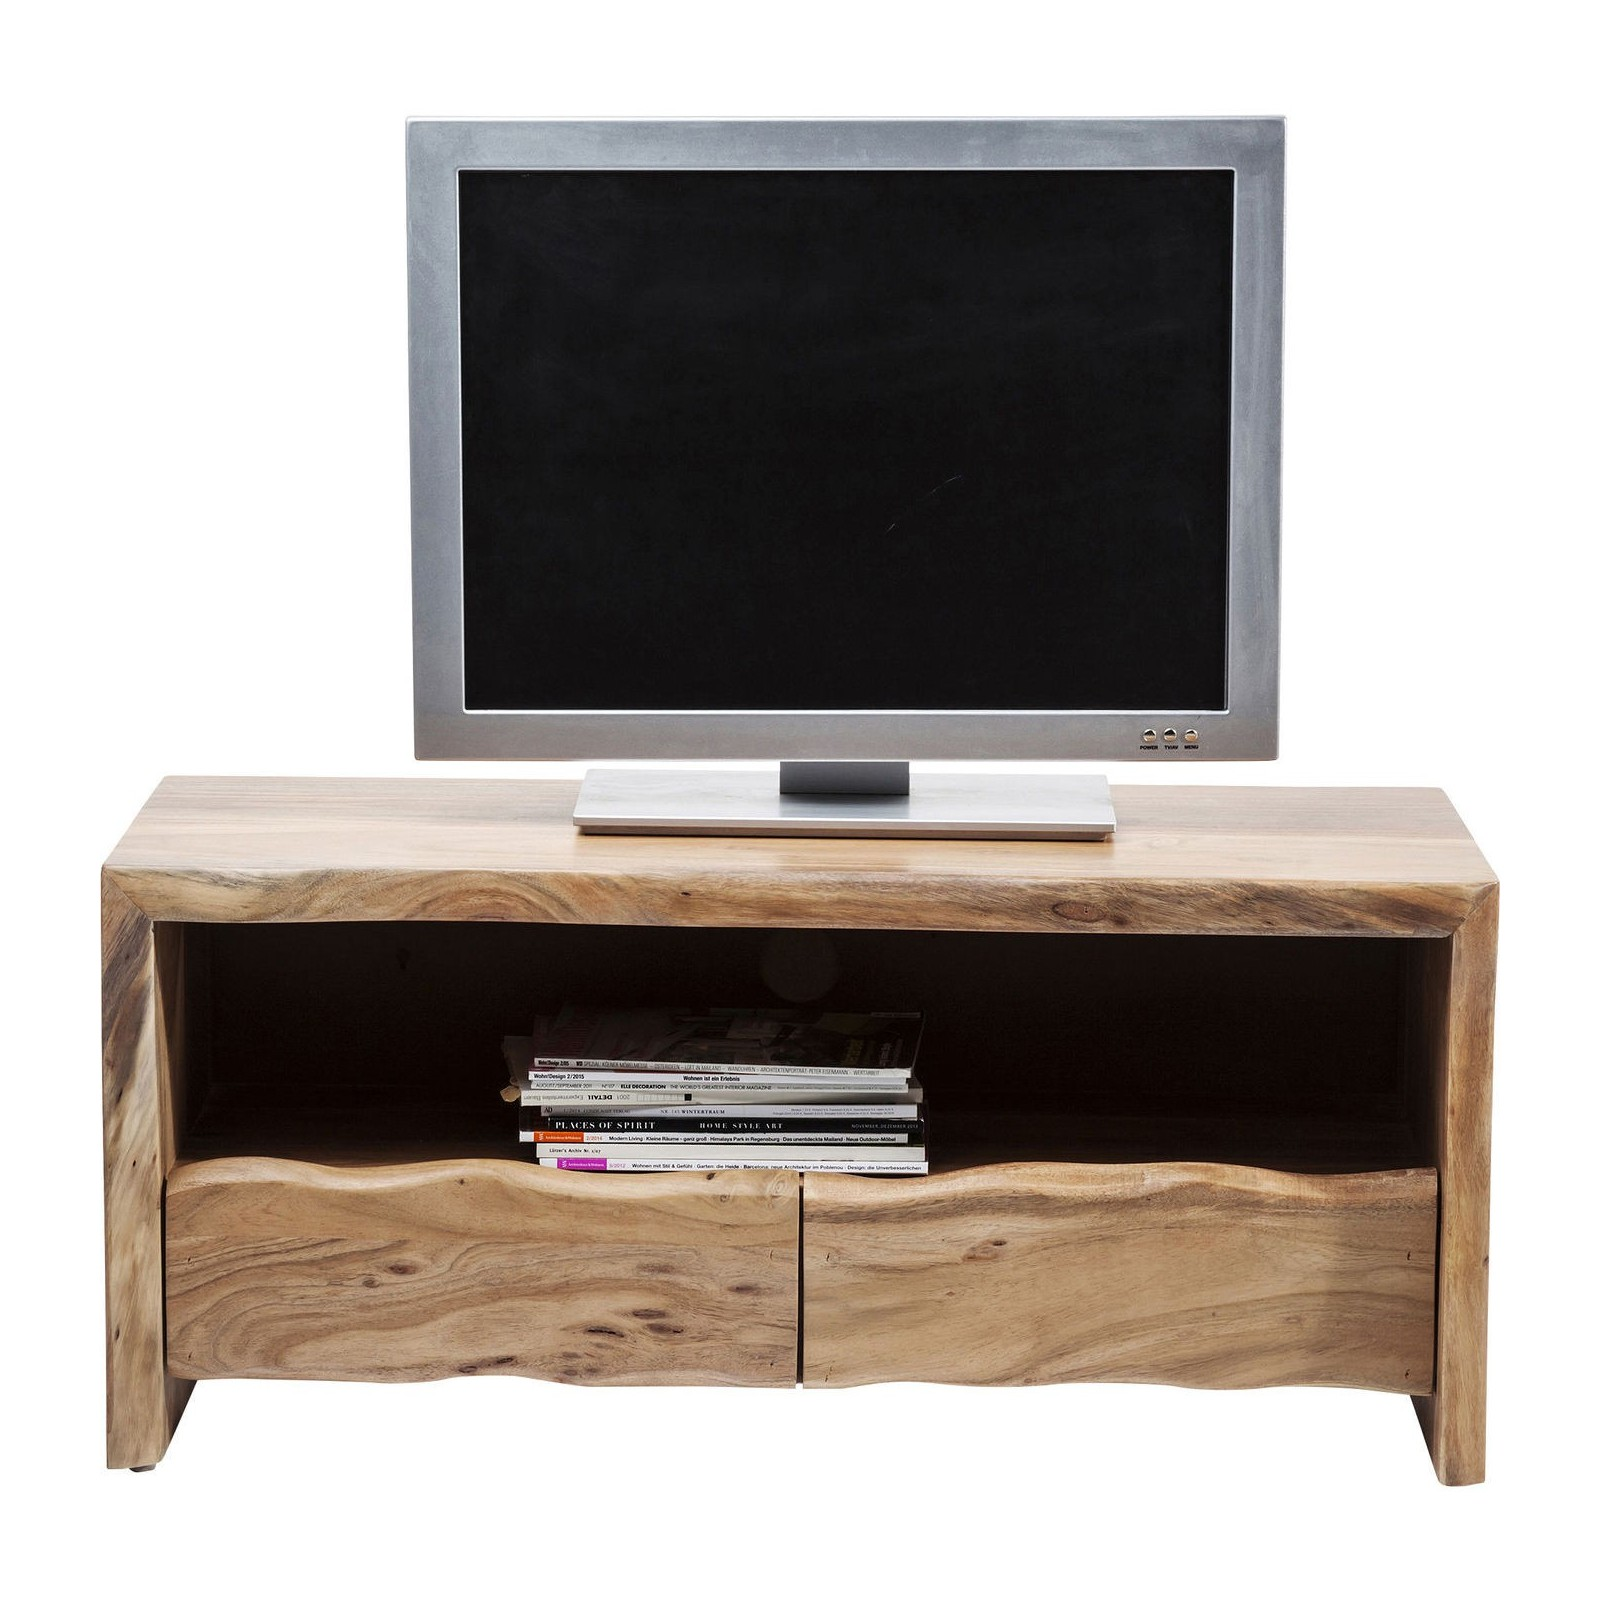 meuble tv scandinave en bois pure nature kare design On meuble tv longueur 100